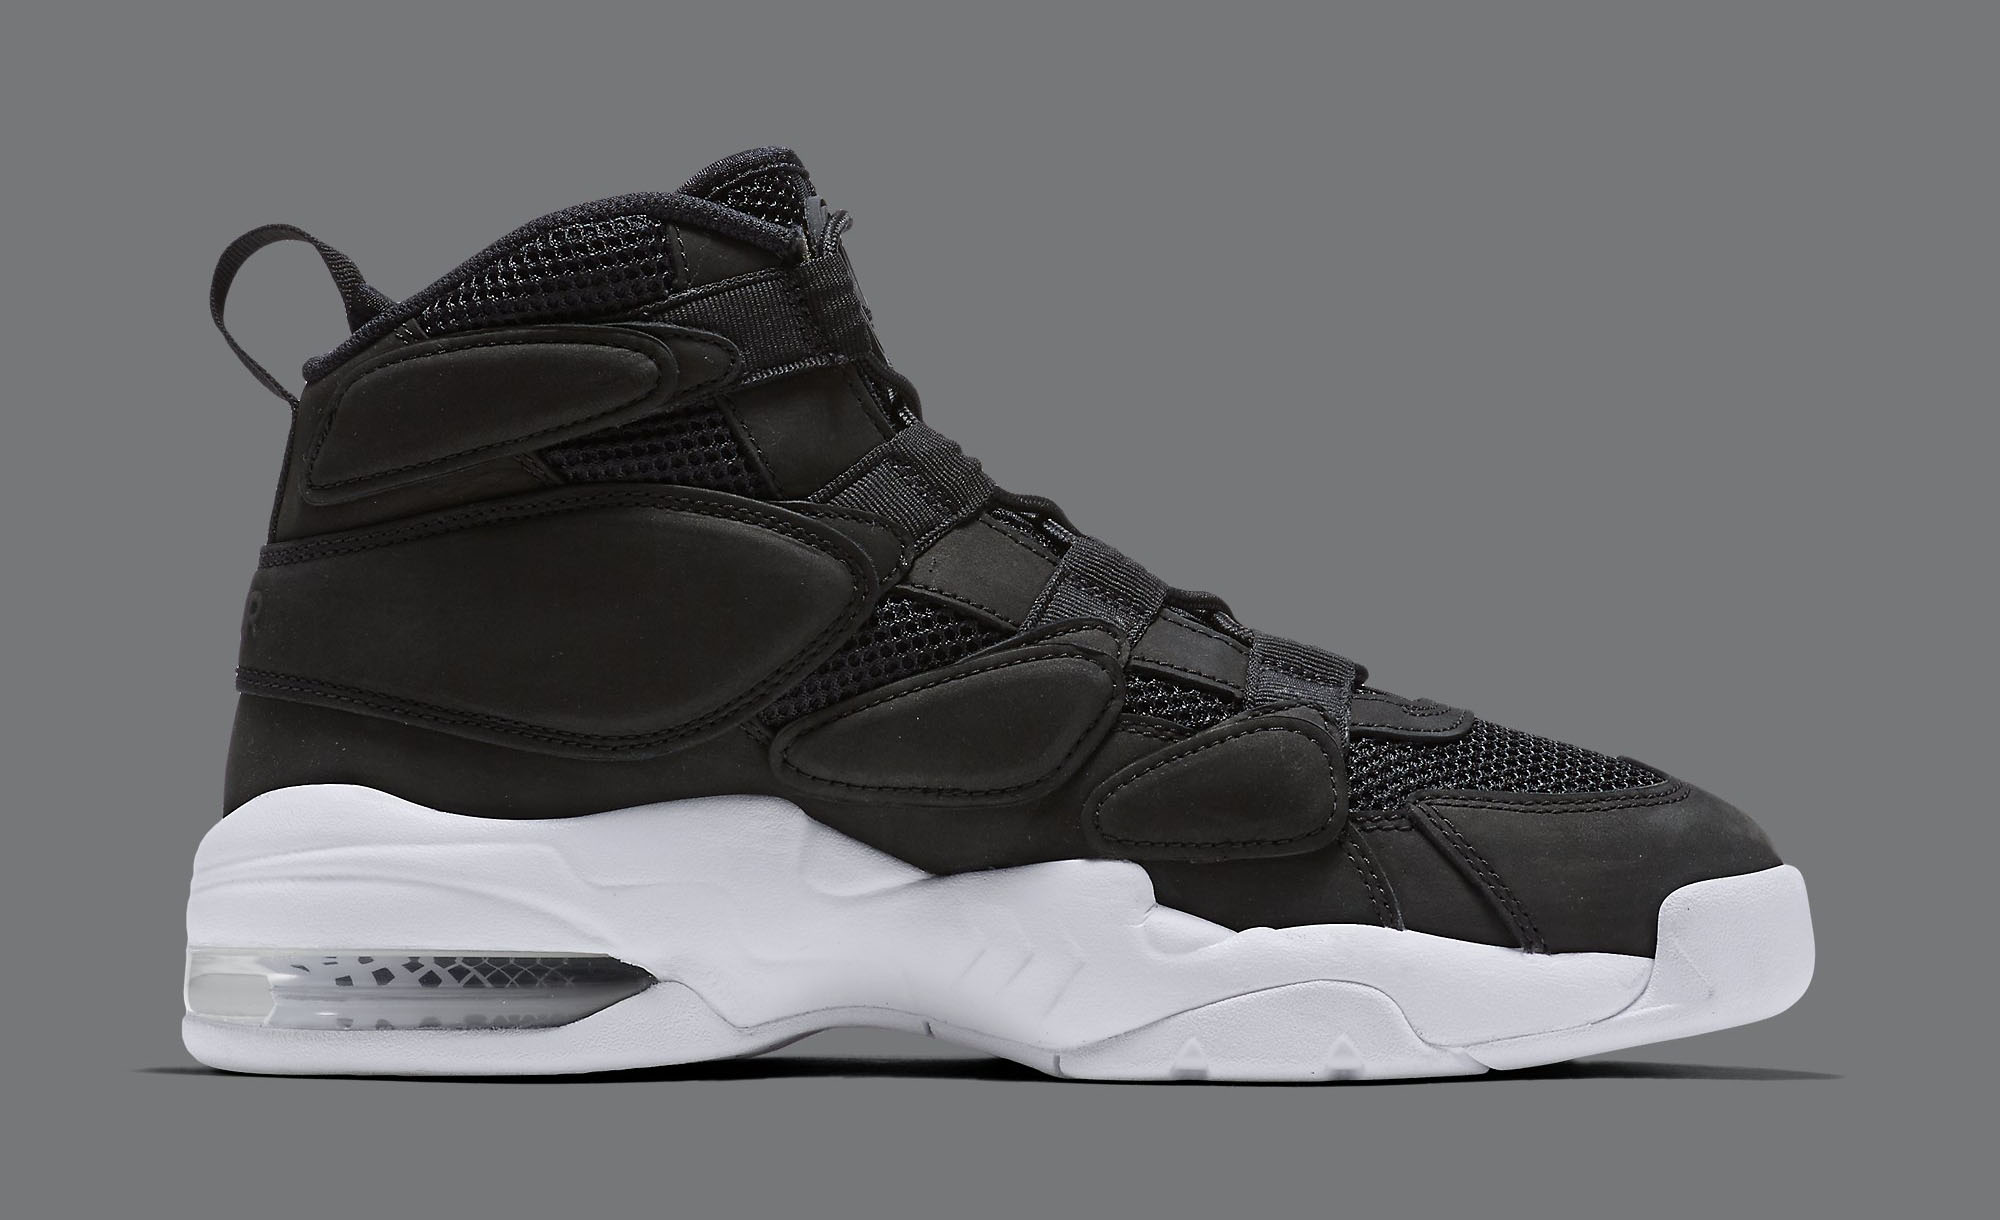 c60610f65a8d01 Nike Air Max Uptempo 2